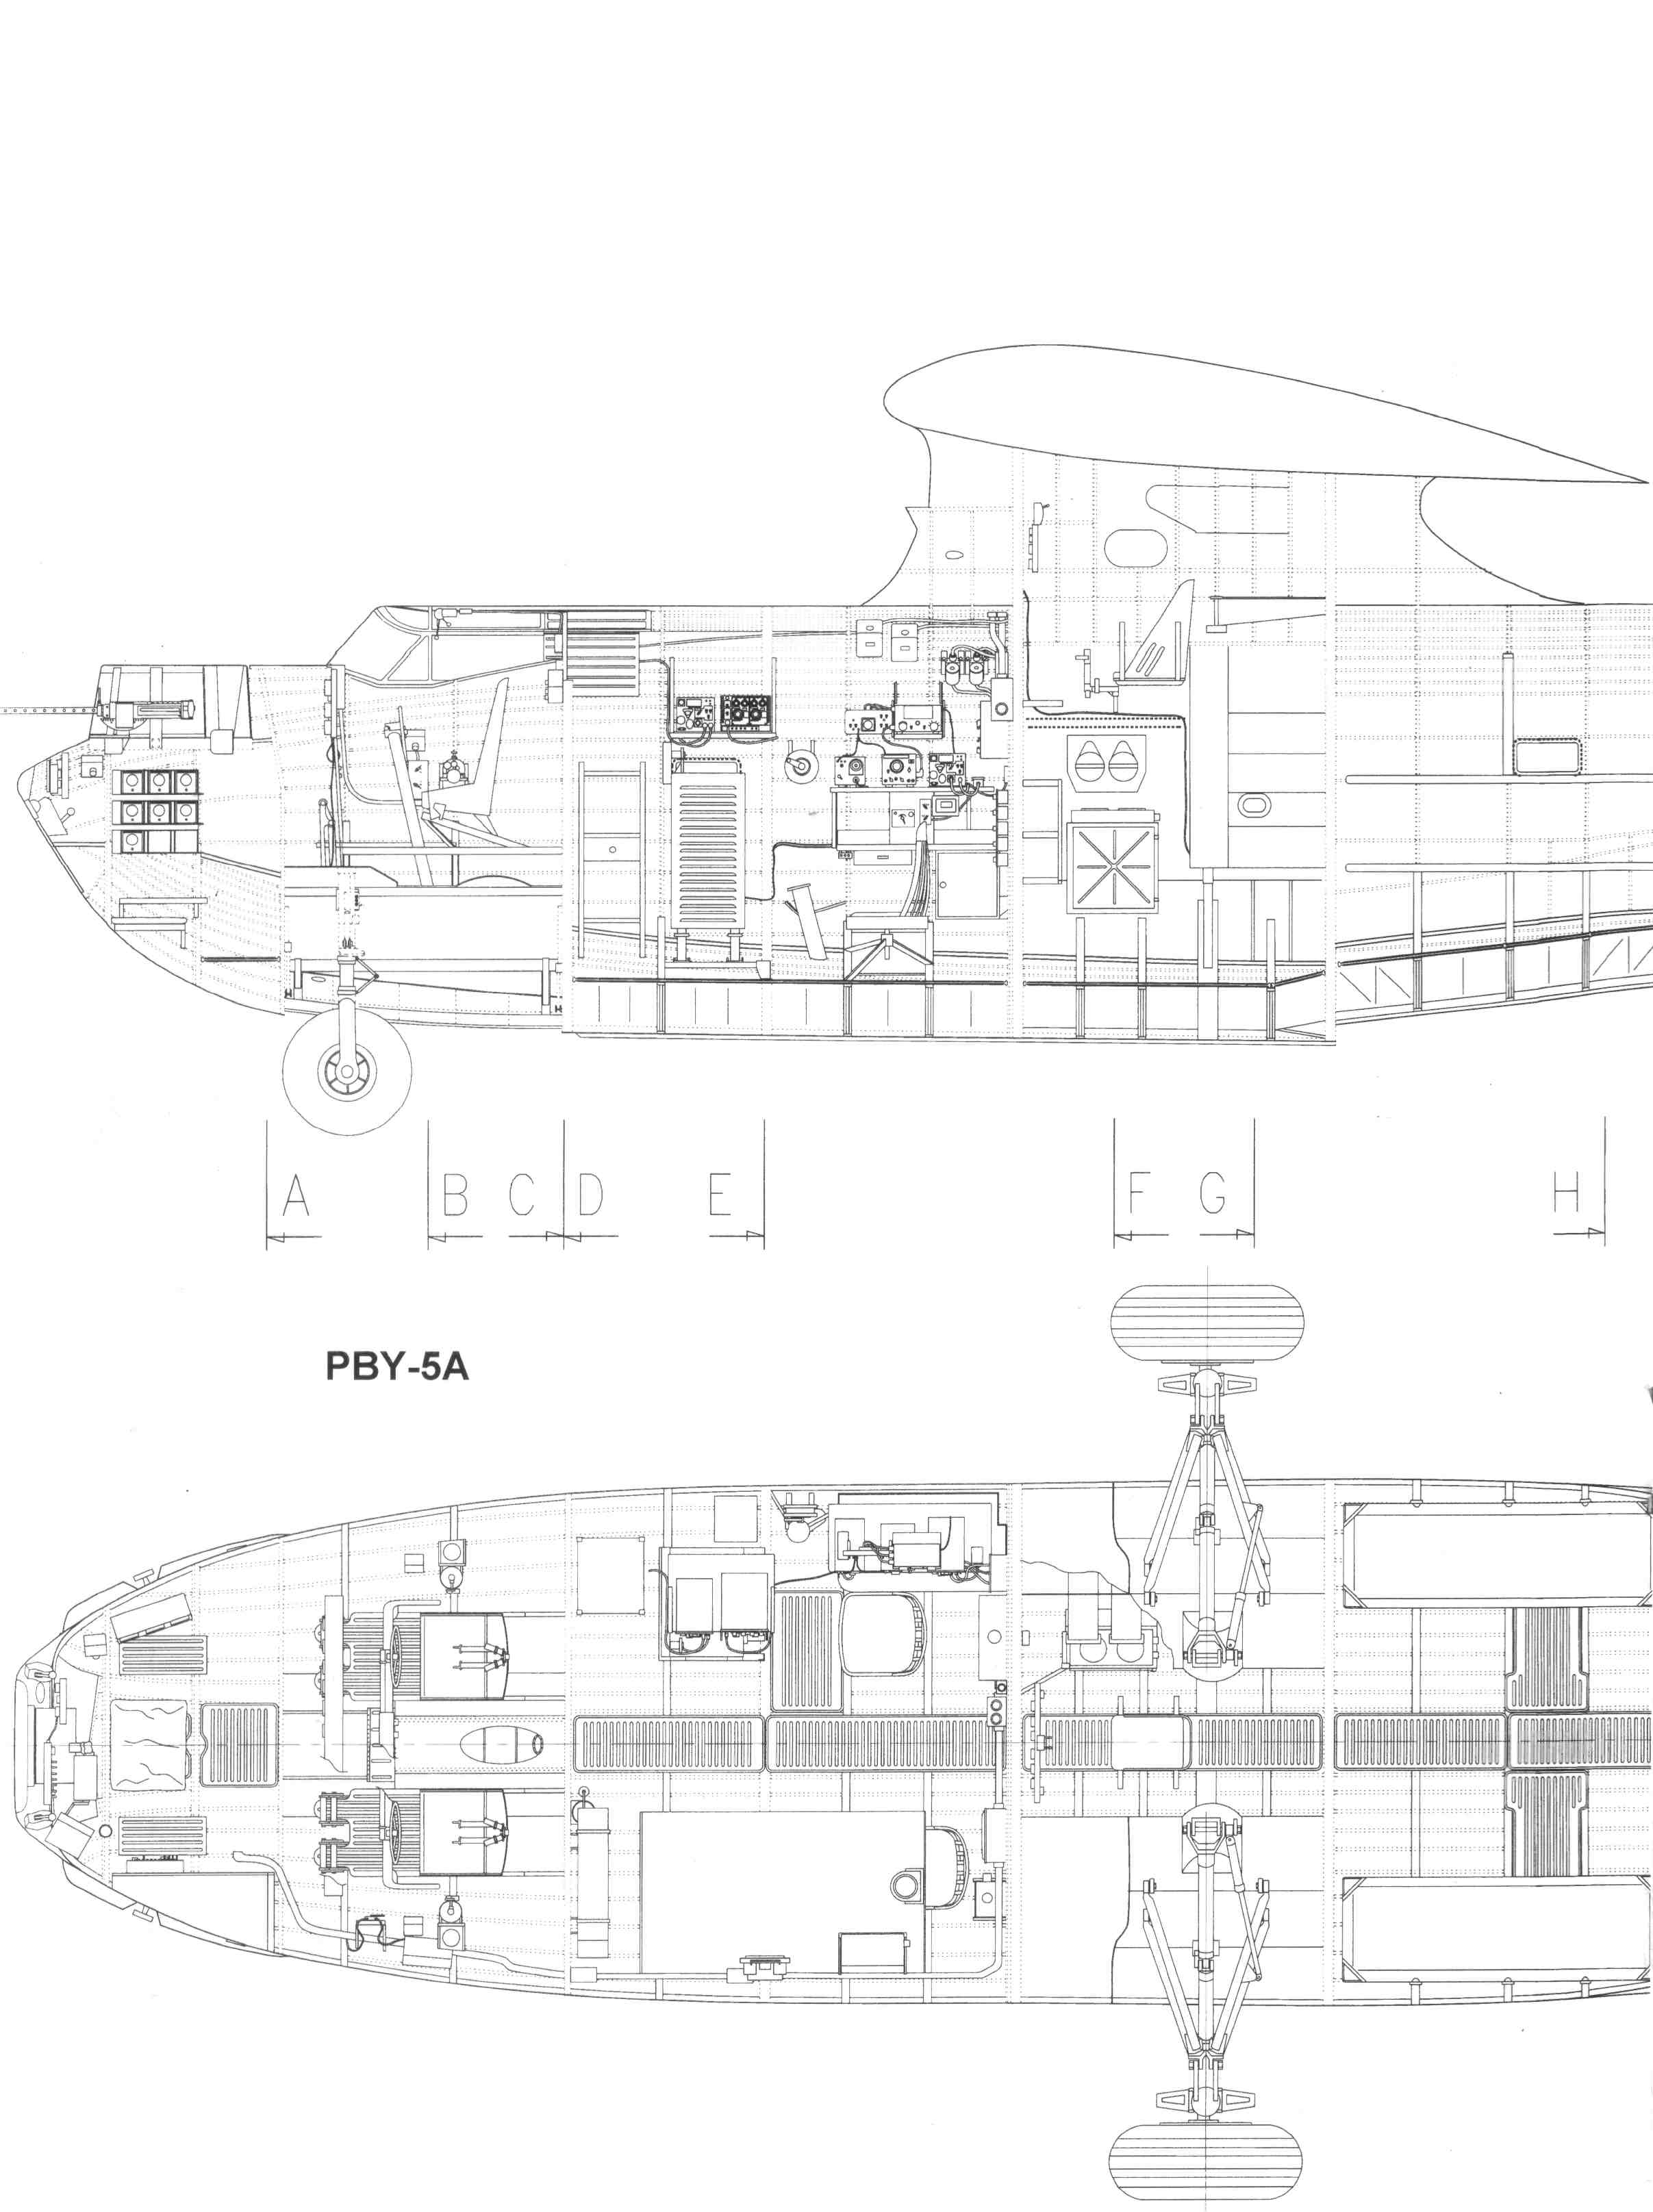 Consolidated pby catalina blueprint download free for Free 3d blueprints